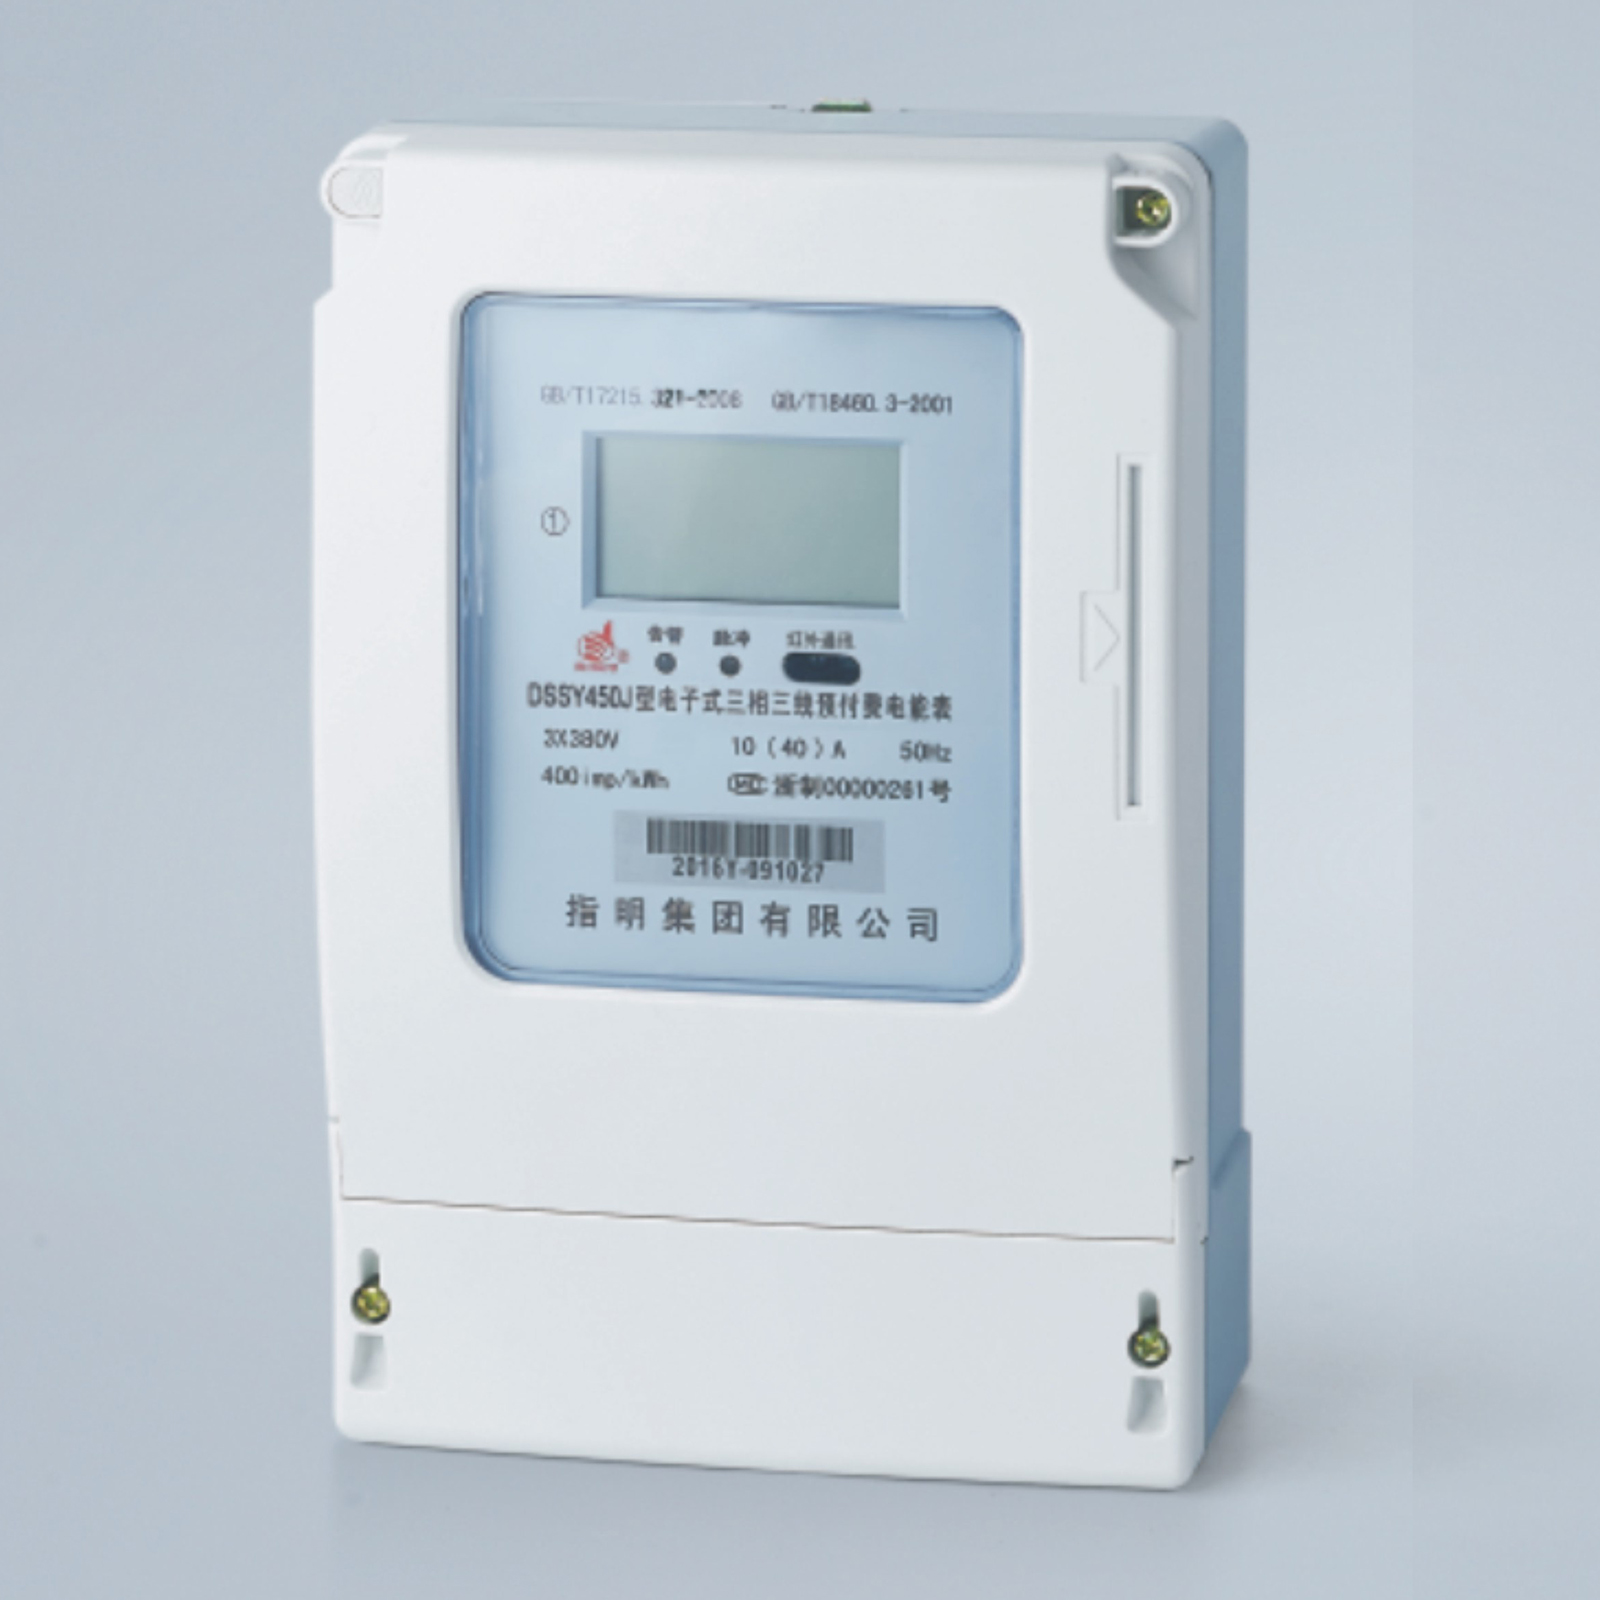 DTSY450J, DSSY450J Three-phase electronic RS485 type prepaid watt-hour meters